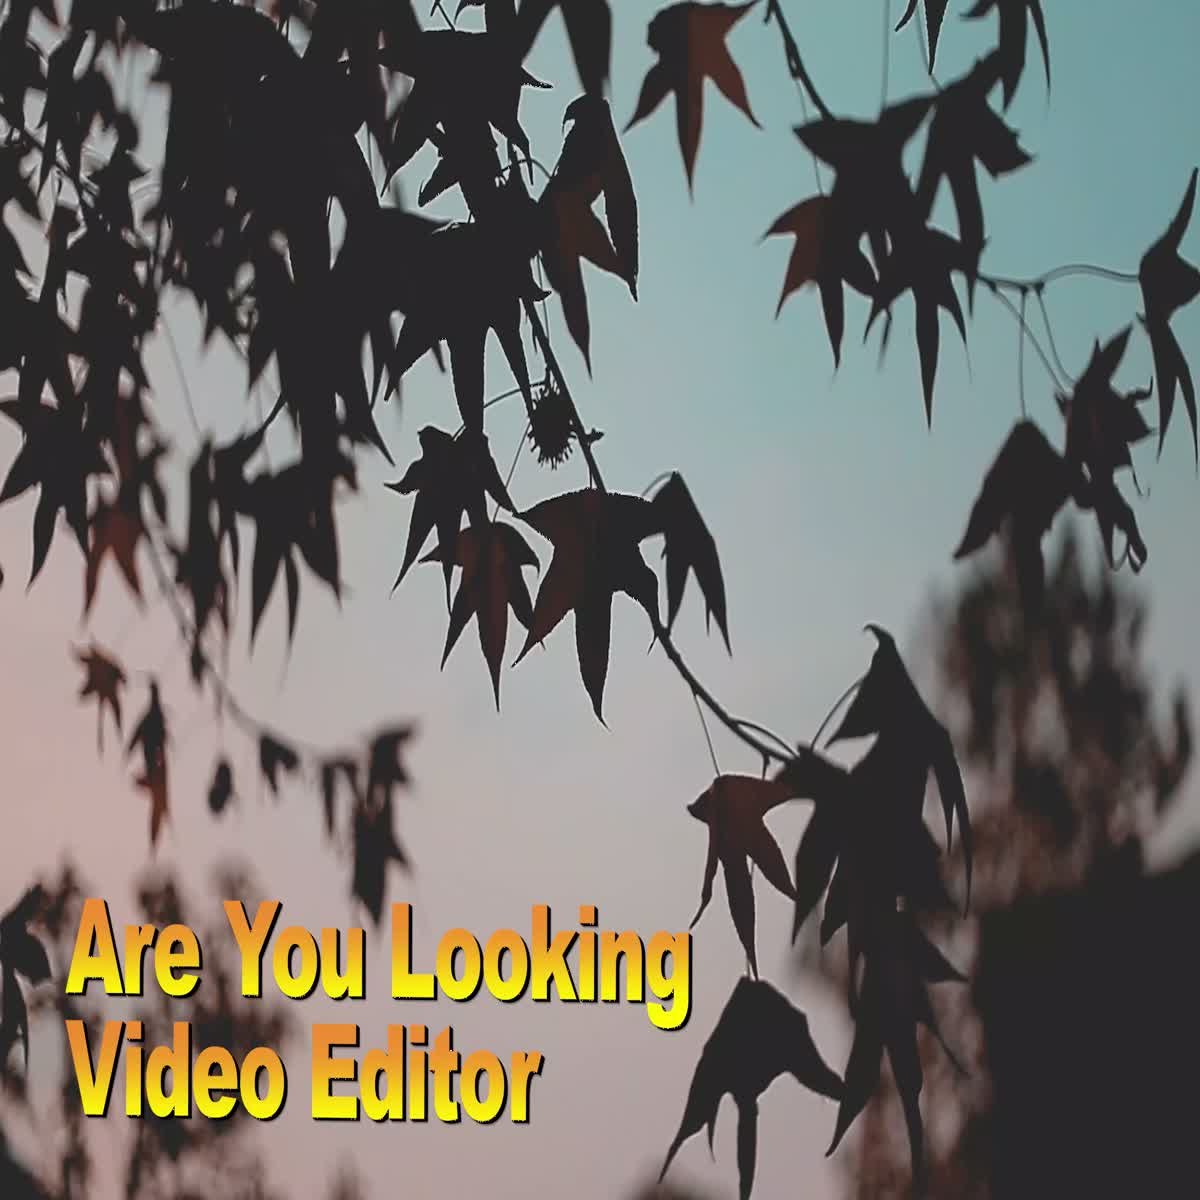 Are You Looking YouTube Video Editor do professional video editing For All Kind Of Videos